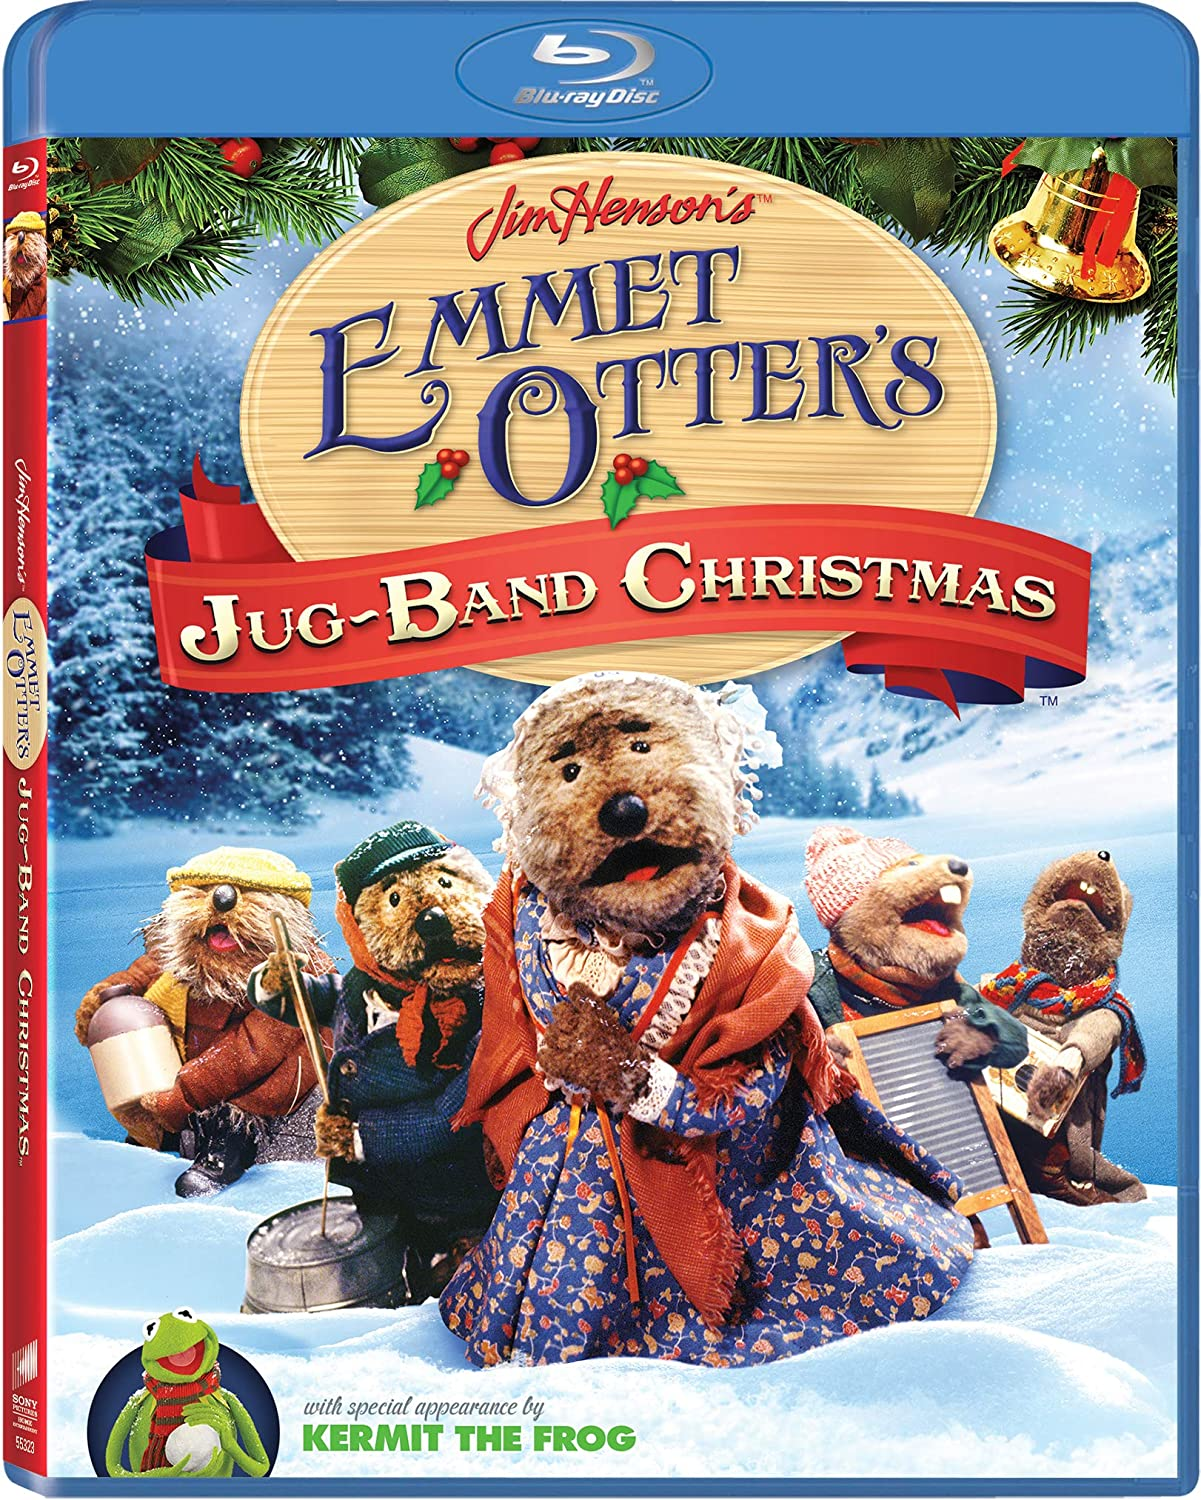 Emmet Otters Jug Band Christmas Blu Ray 2020 Review Emmet Otter's Jug Band Christmas [Blu ray]: Amazon.ca: EMMET